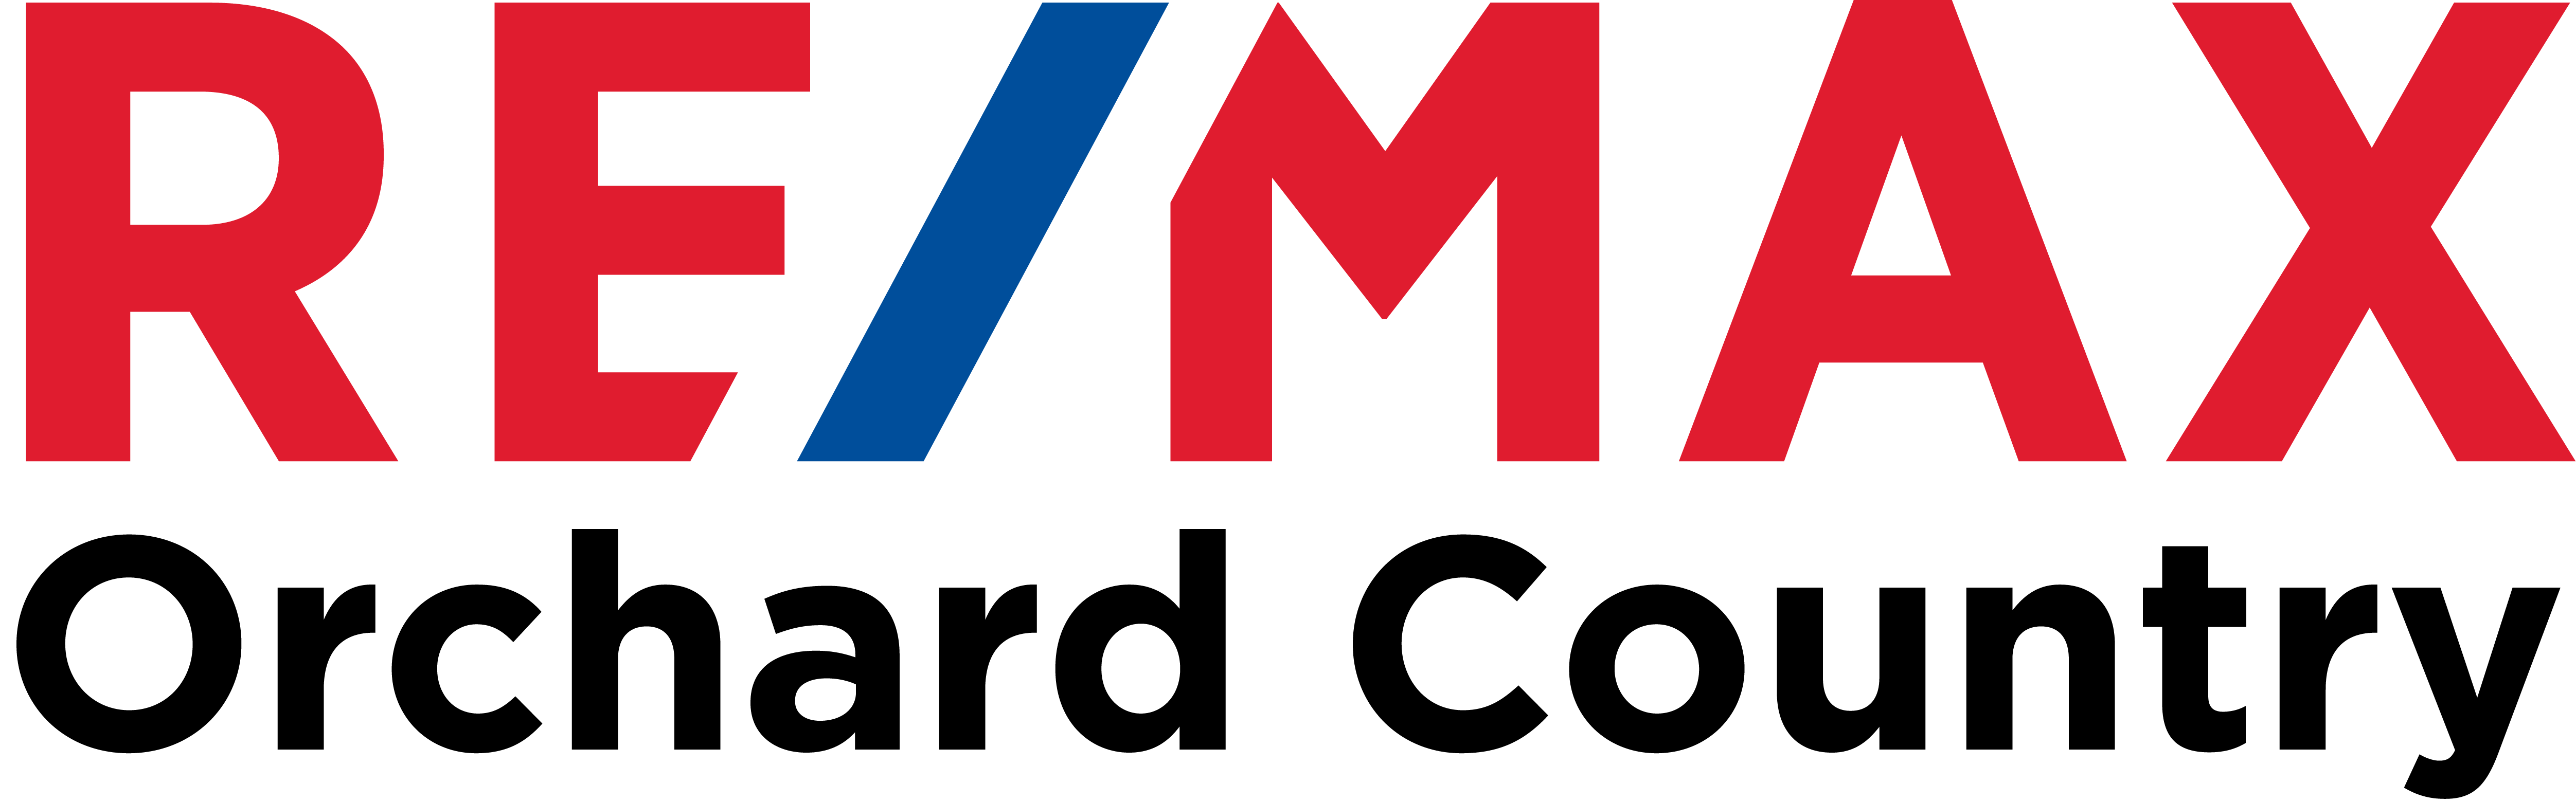 RE/MAX Orchard Country